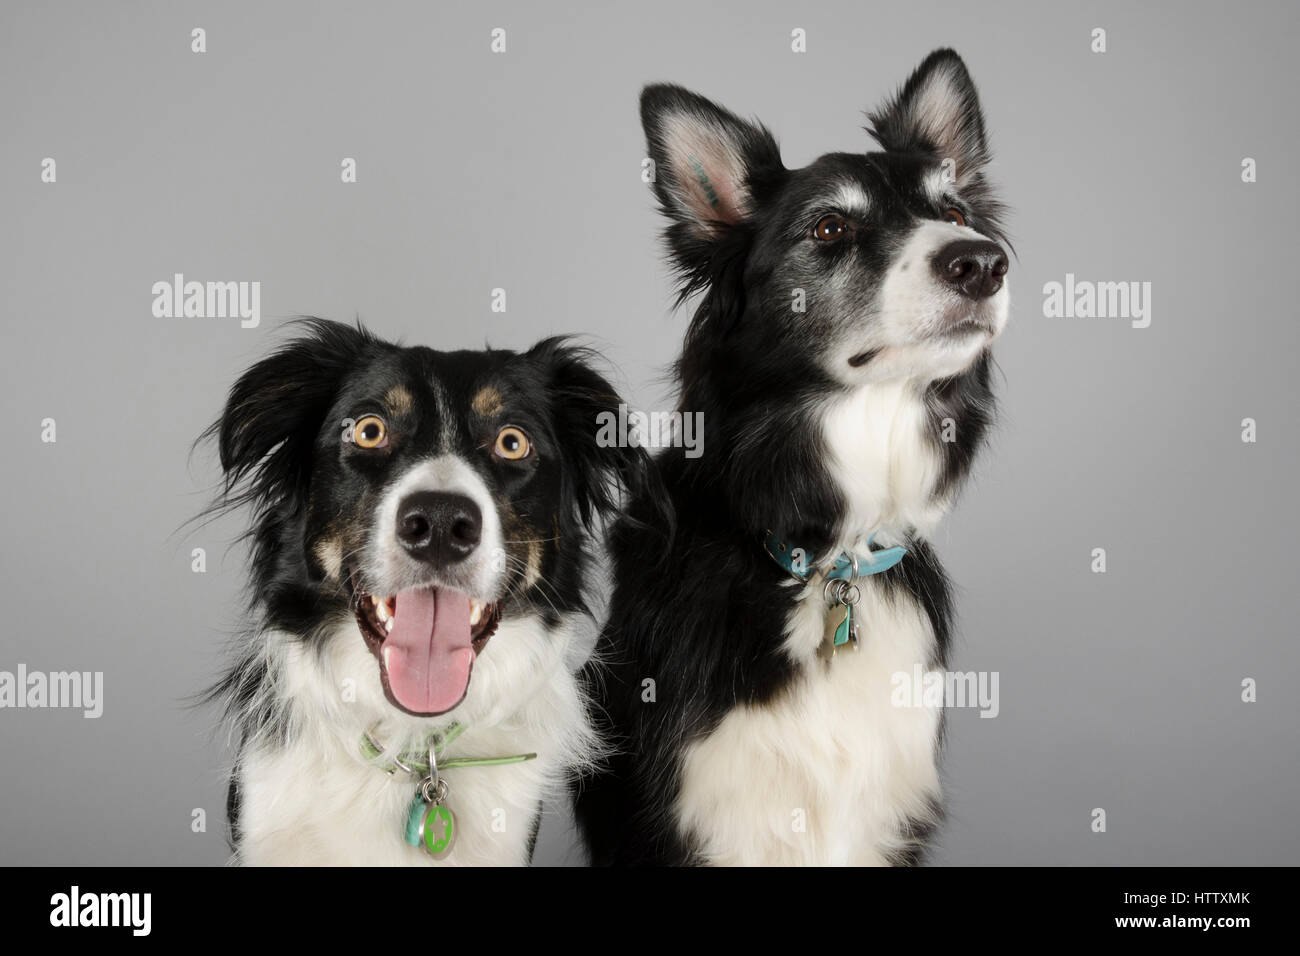 Border Collie Dogs 7 years and 2 years old - Stock Image